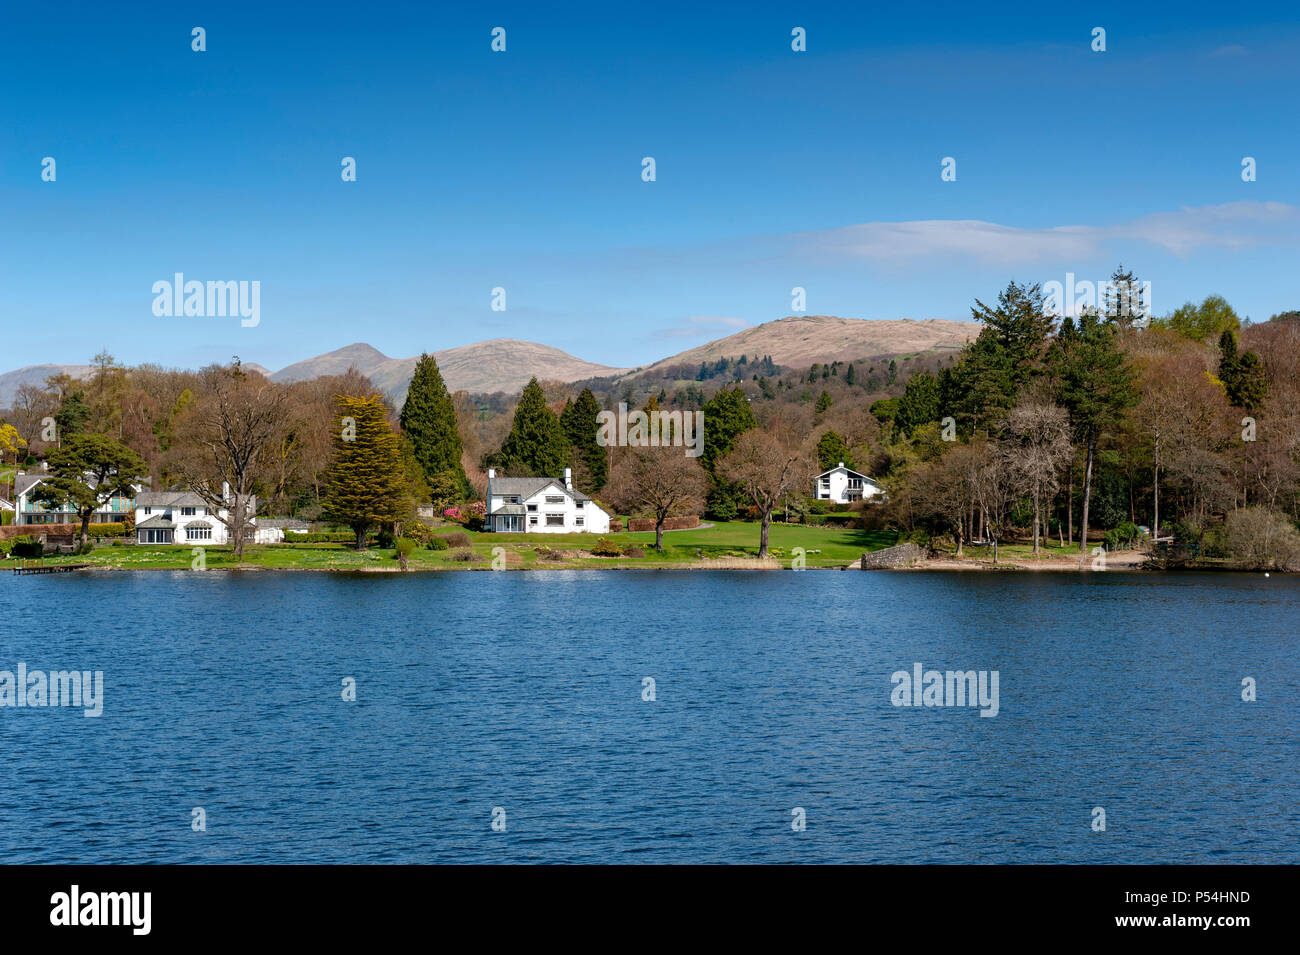 Beautiful lakeside village situated on the bank of Lake Windermere in the scenic Lake District National Park, South Lakeland, North West England, UK - Stock Image